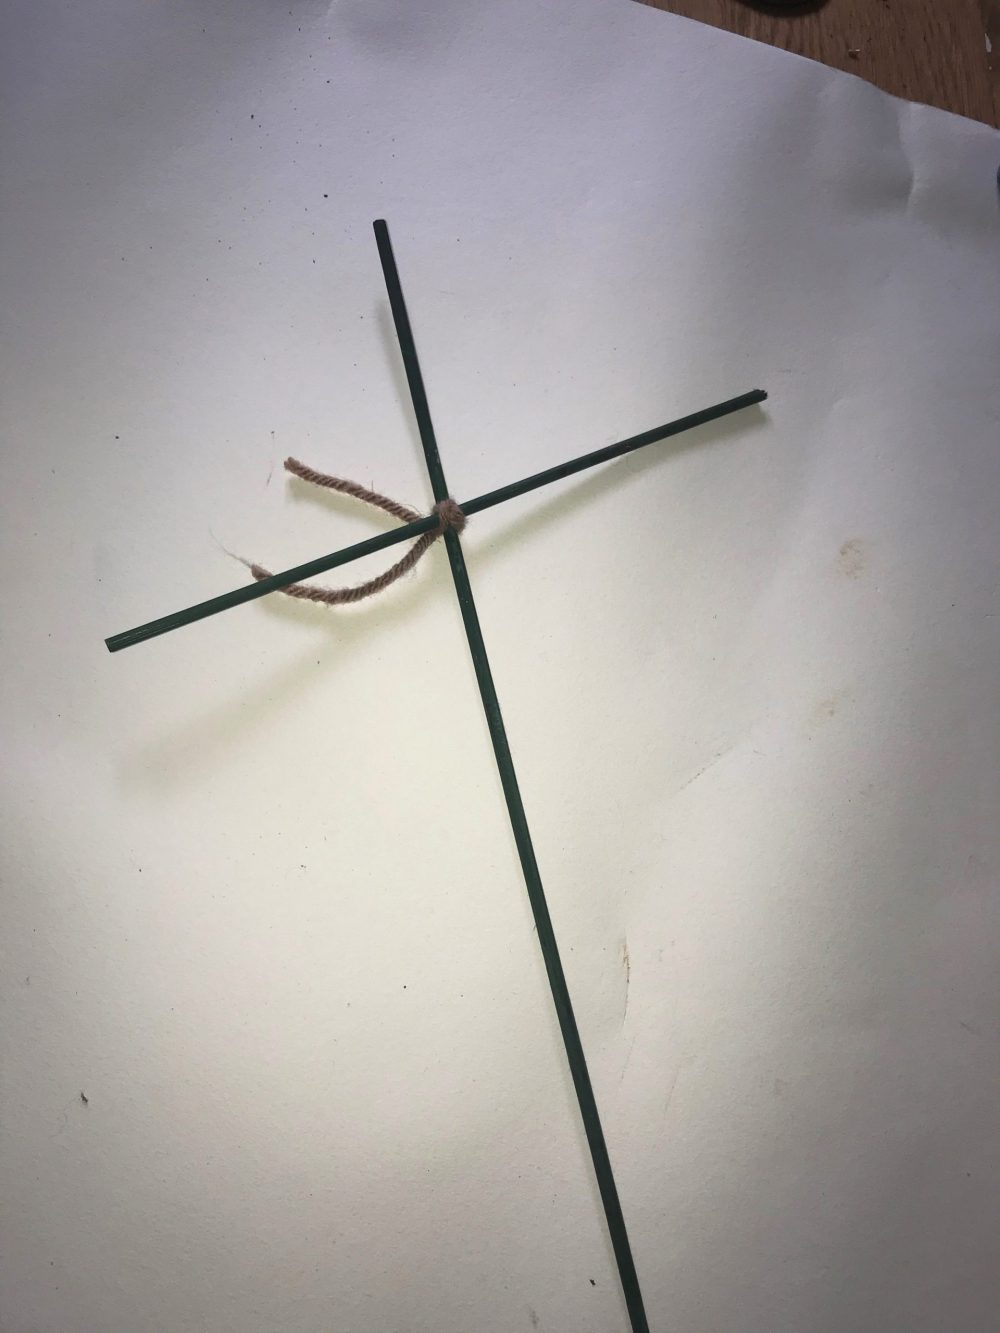 two rods joined in a cross shape